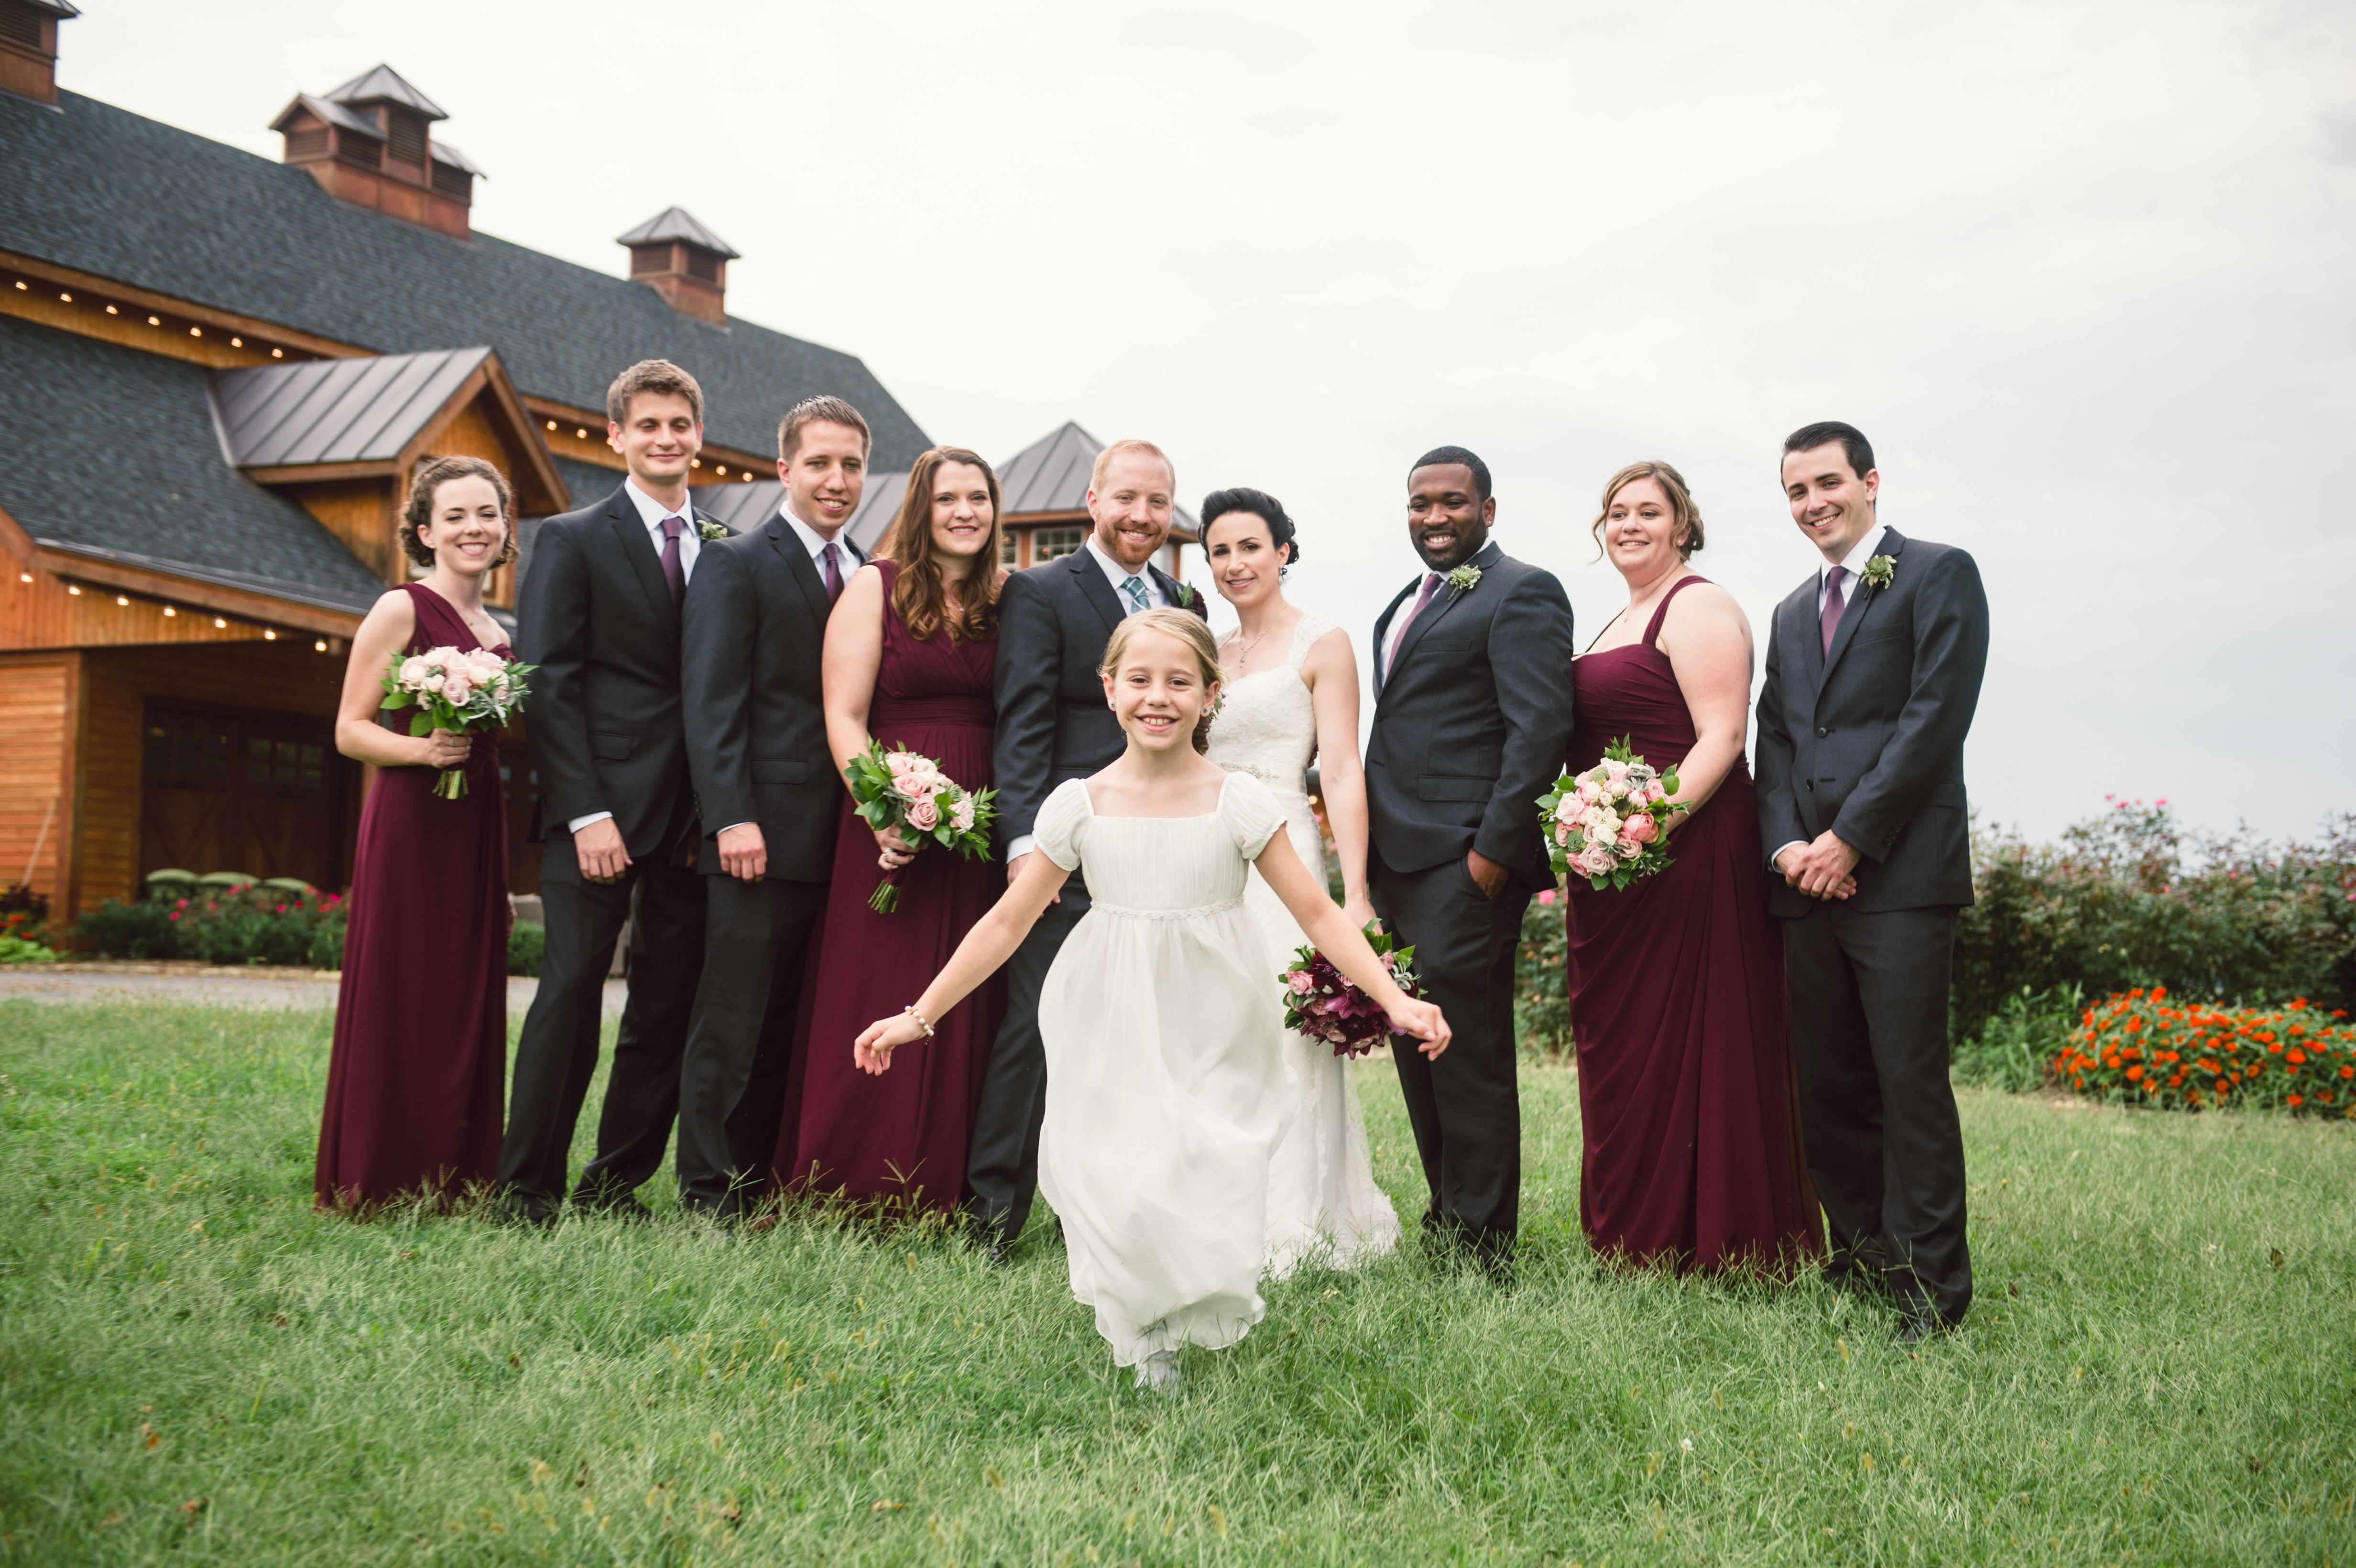 Wedding Party in Charcoal Gray and Burgundy | Wedding ...